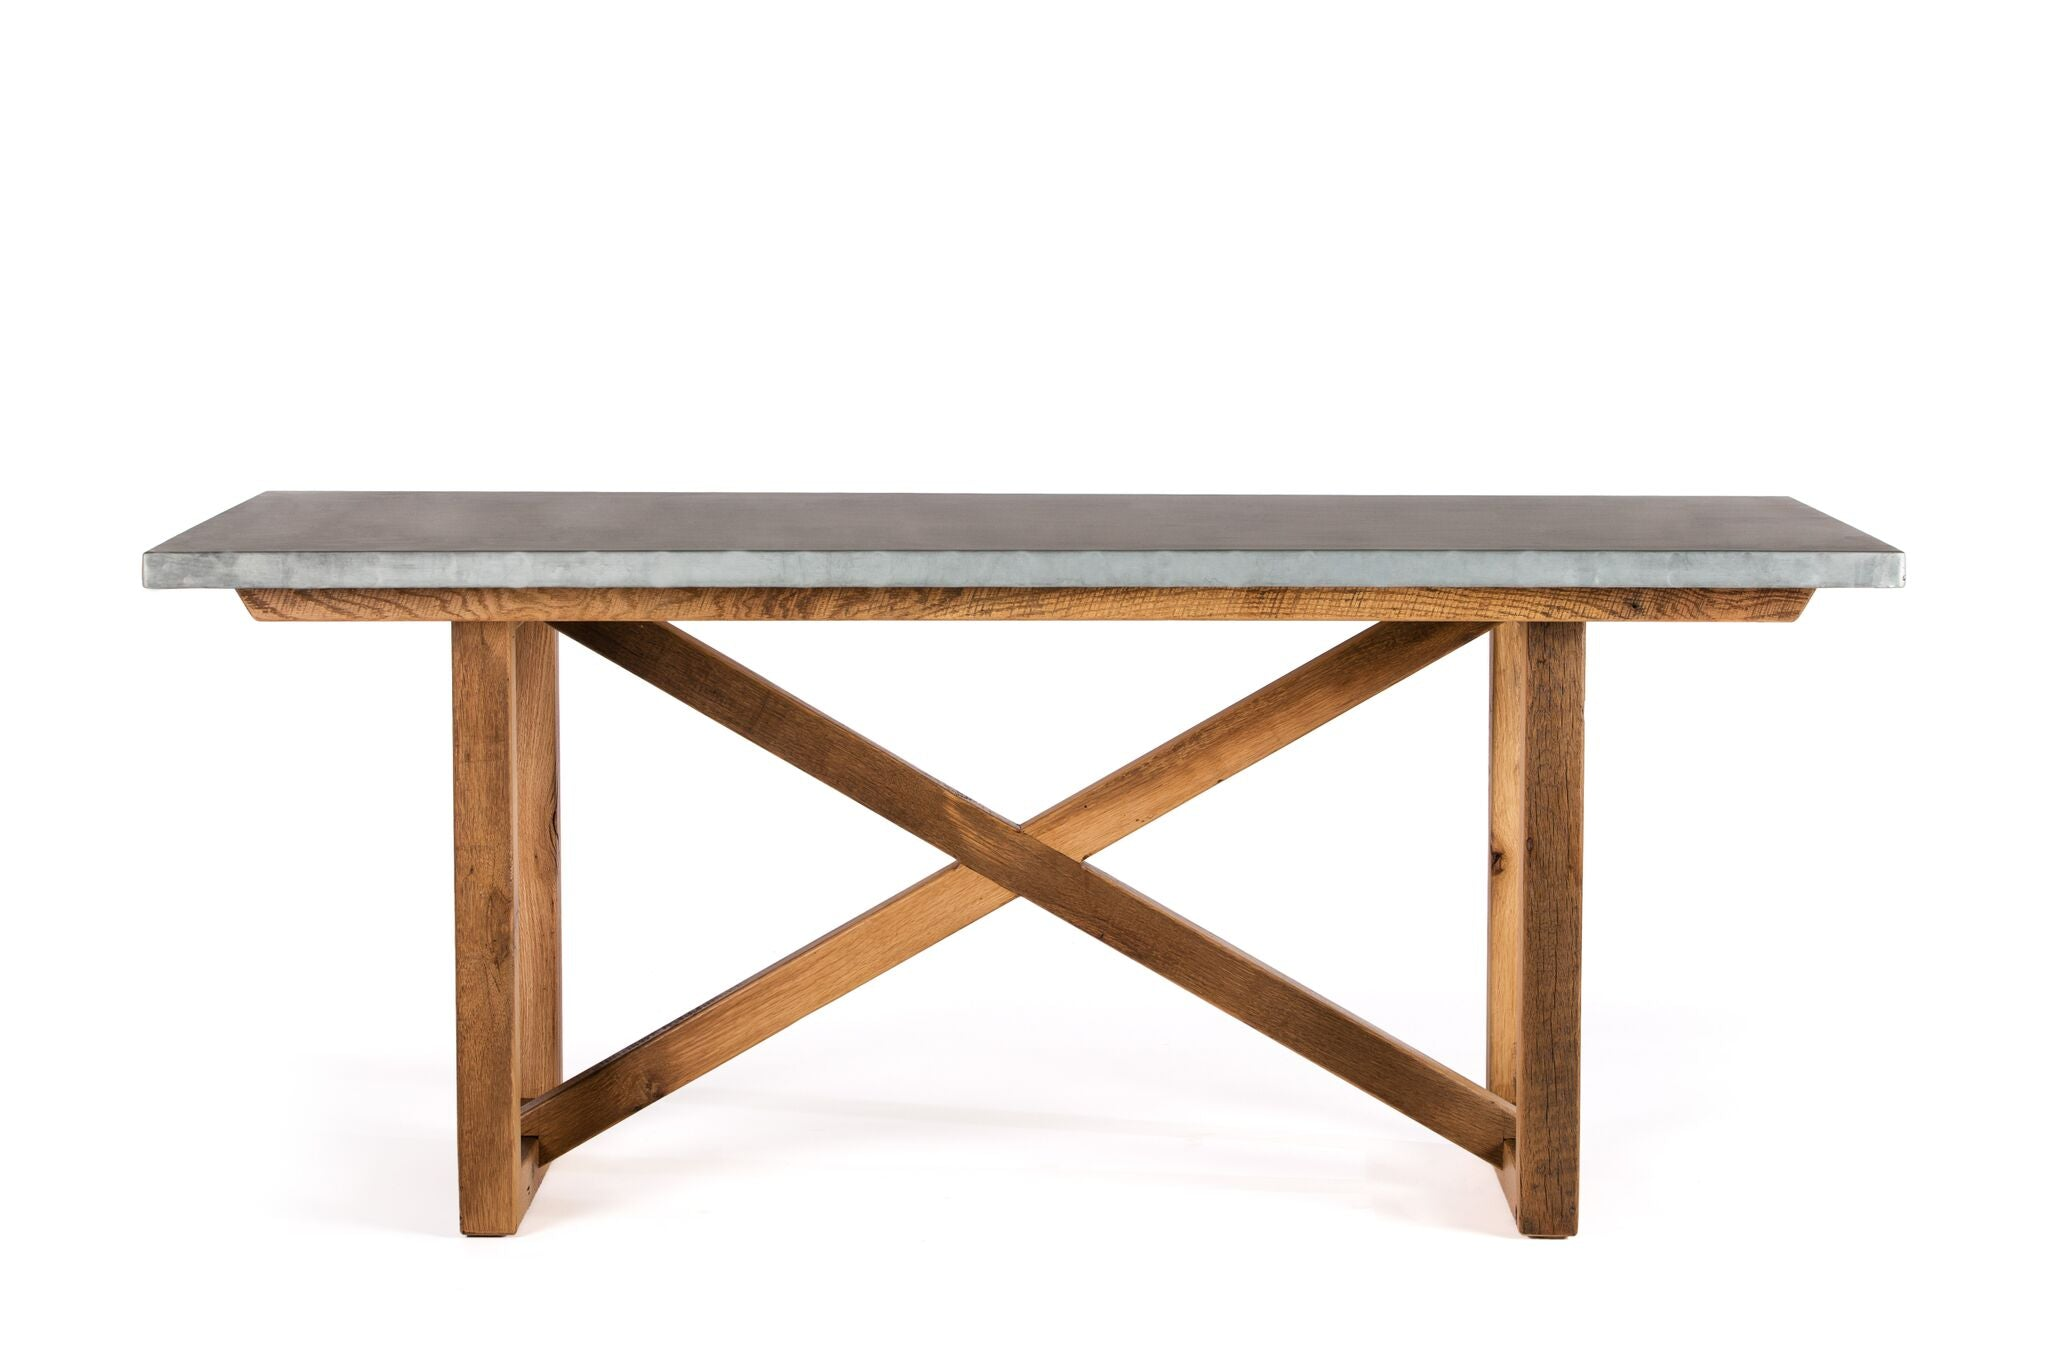 "Zinc Rectangular Table | Astor Table | CLASSIC | Natural Ash | CUSTOM SIZE L 60 W 37 H 30 | 1.5"" StandardPlain, No Rivets kingston-krafts-zinc-tables."